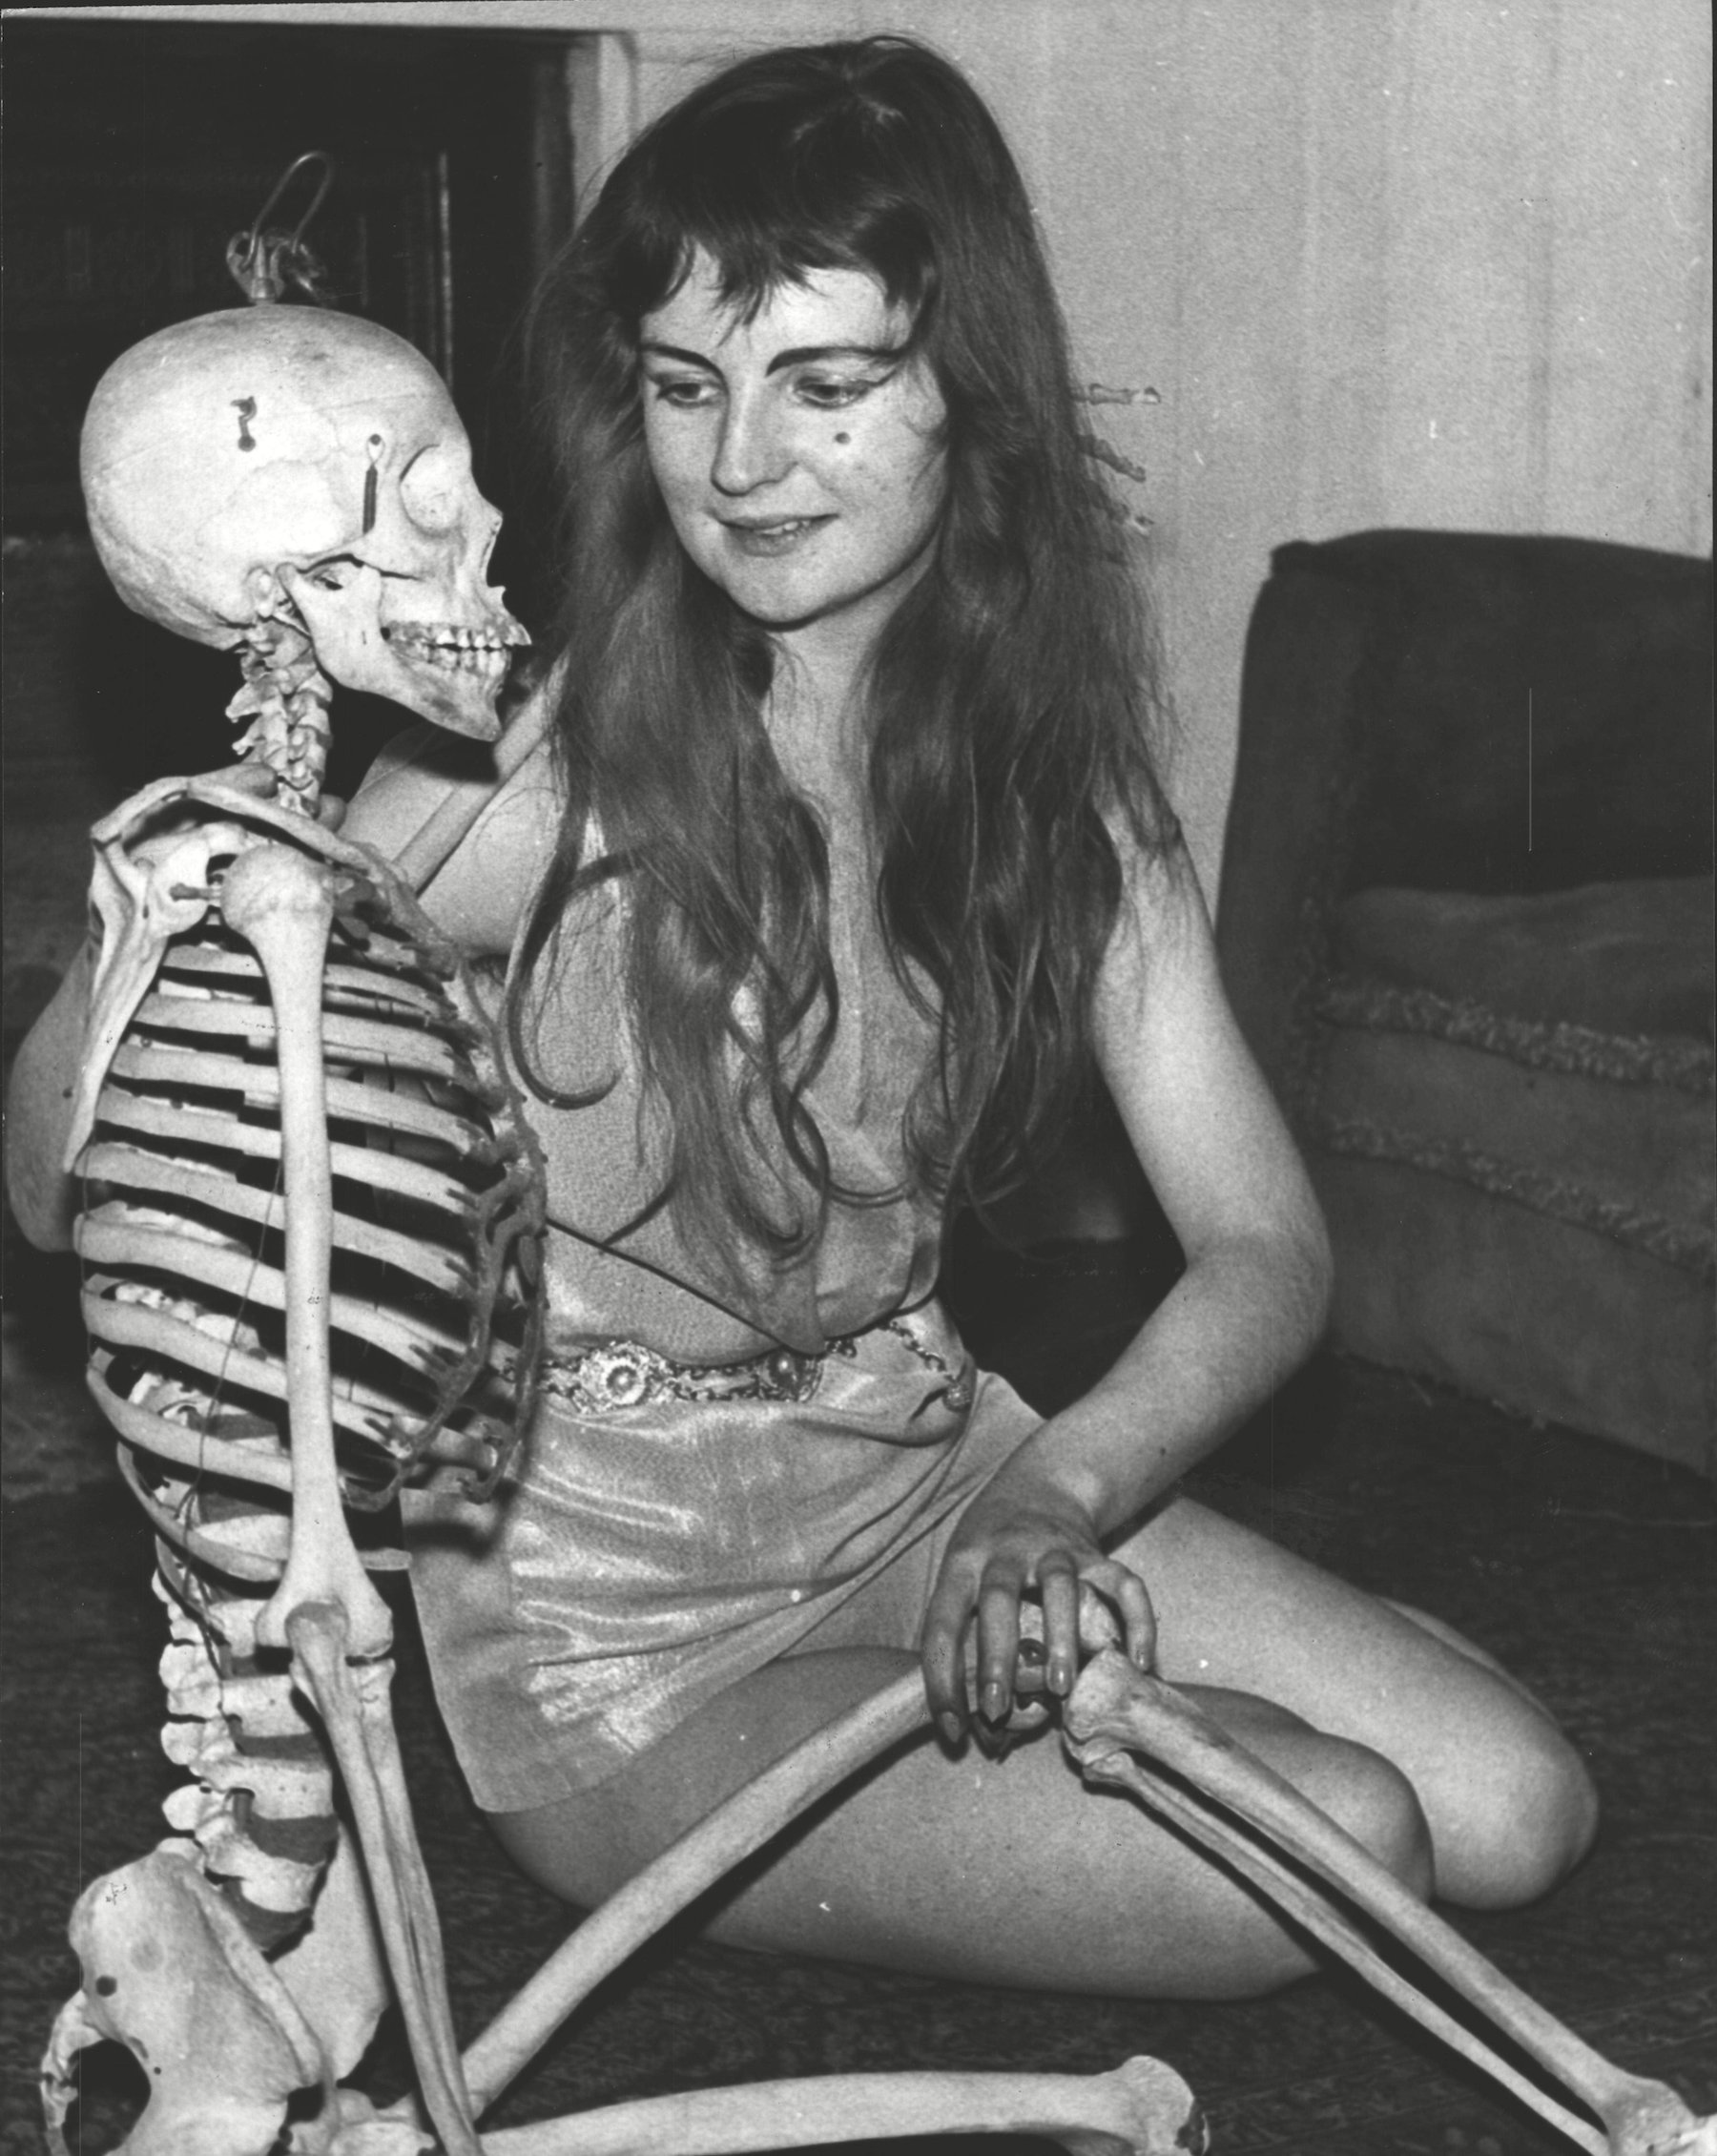 20-year-old Jill Tabor Who Has Been Chosen To The First Model Of The New Year At The Chelsea Arts Ball. (for Full Caption